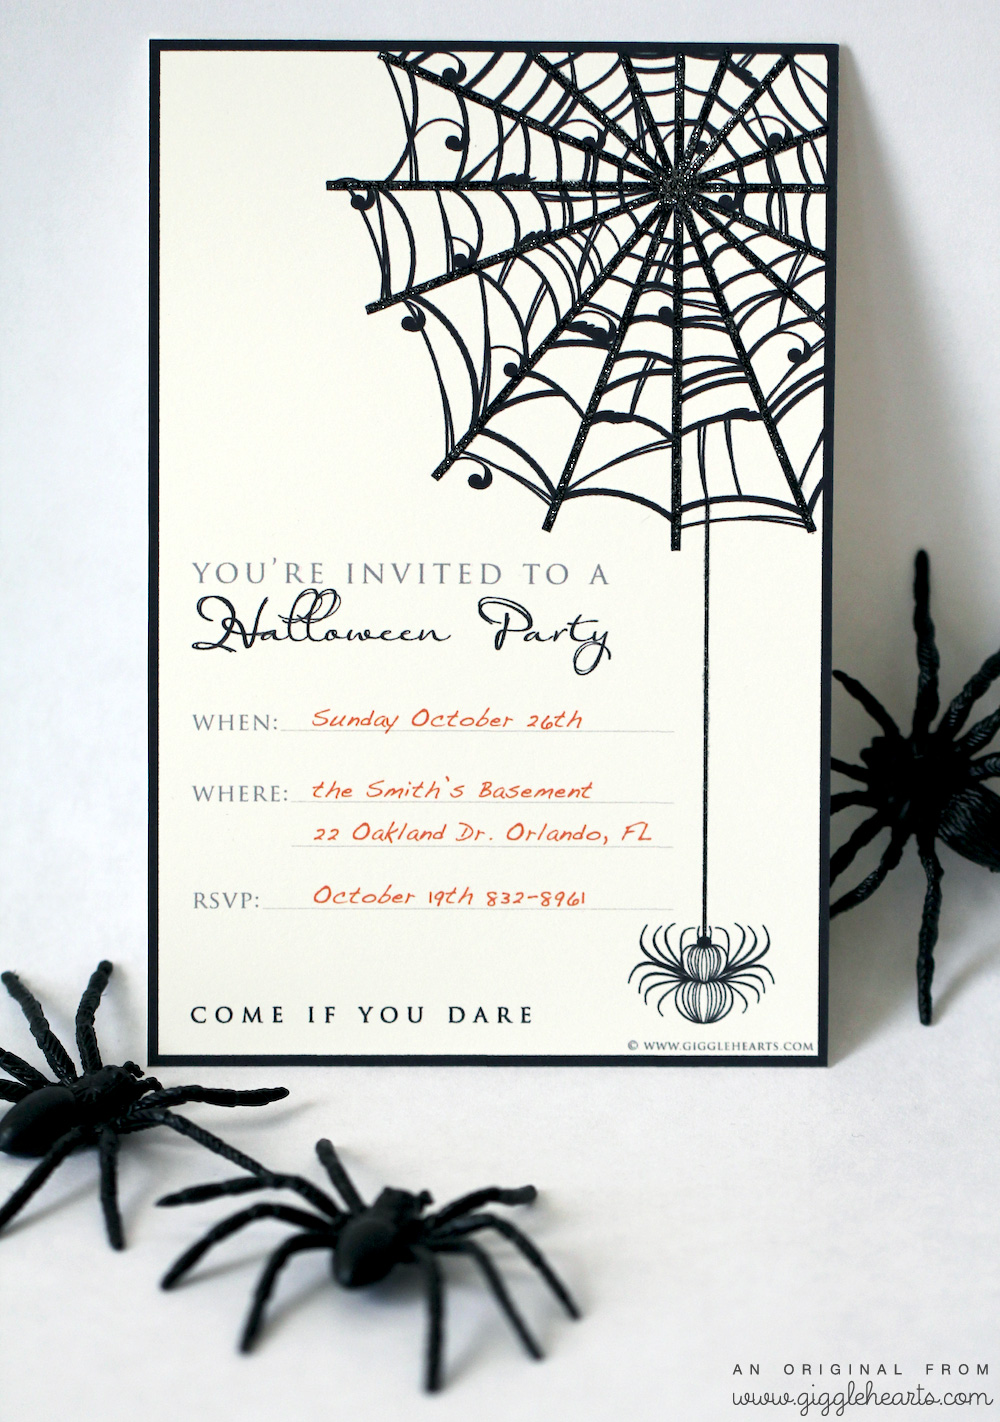 Here we show you the best ideas of halloween party invitations, cards, designs of creative and original templates. Free Halloween Party Invitation Printable With Glitter For A Fun Added Touch